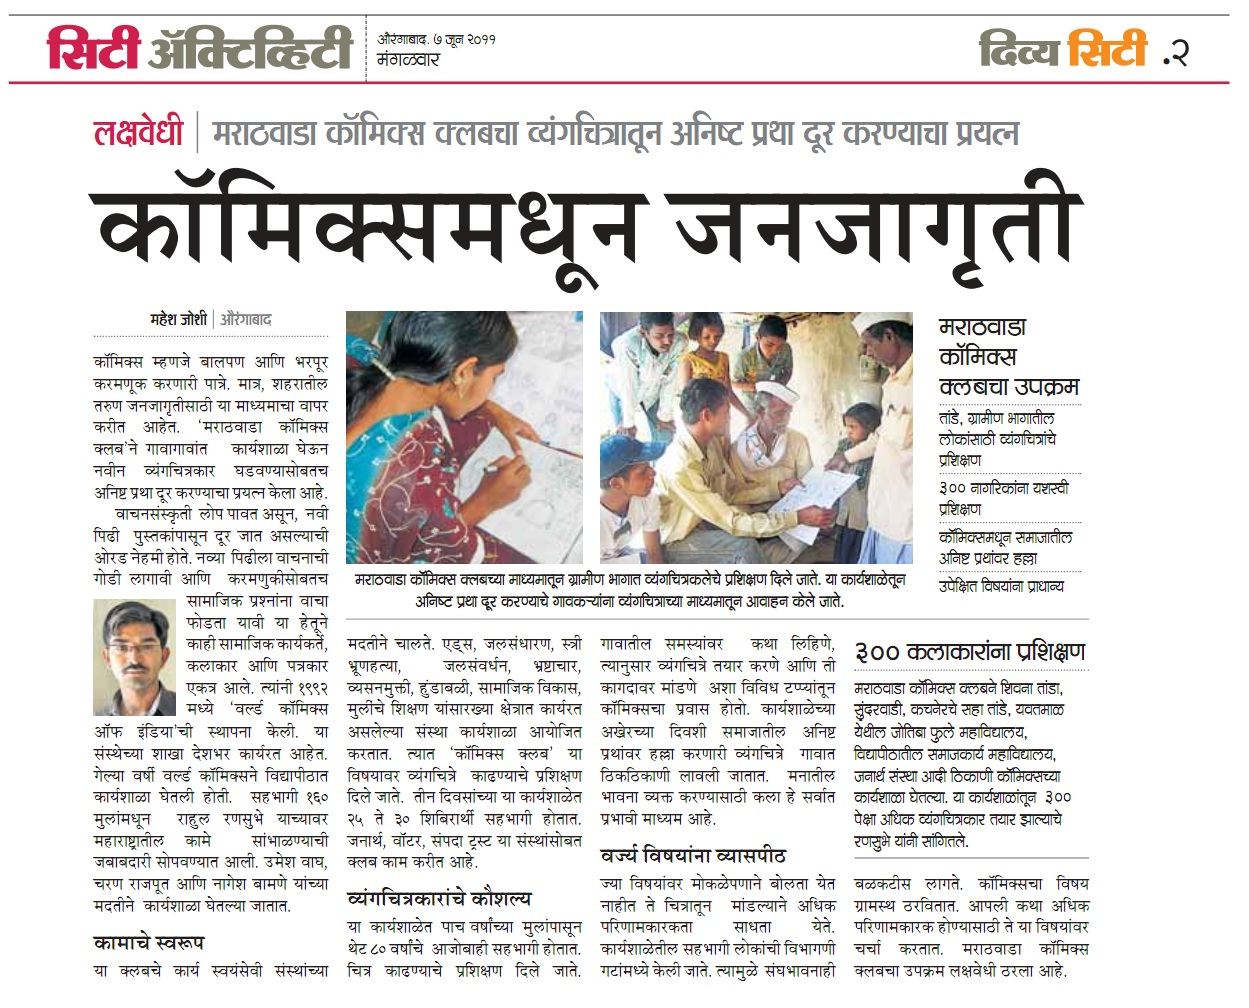 essays in marathi for school level My essay marathi picnic school on grants she was already far behind in school credits in completing the 11th grade marathi essay on my school picnic.